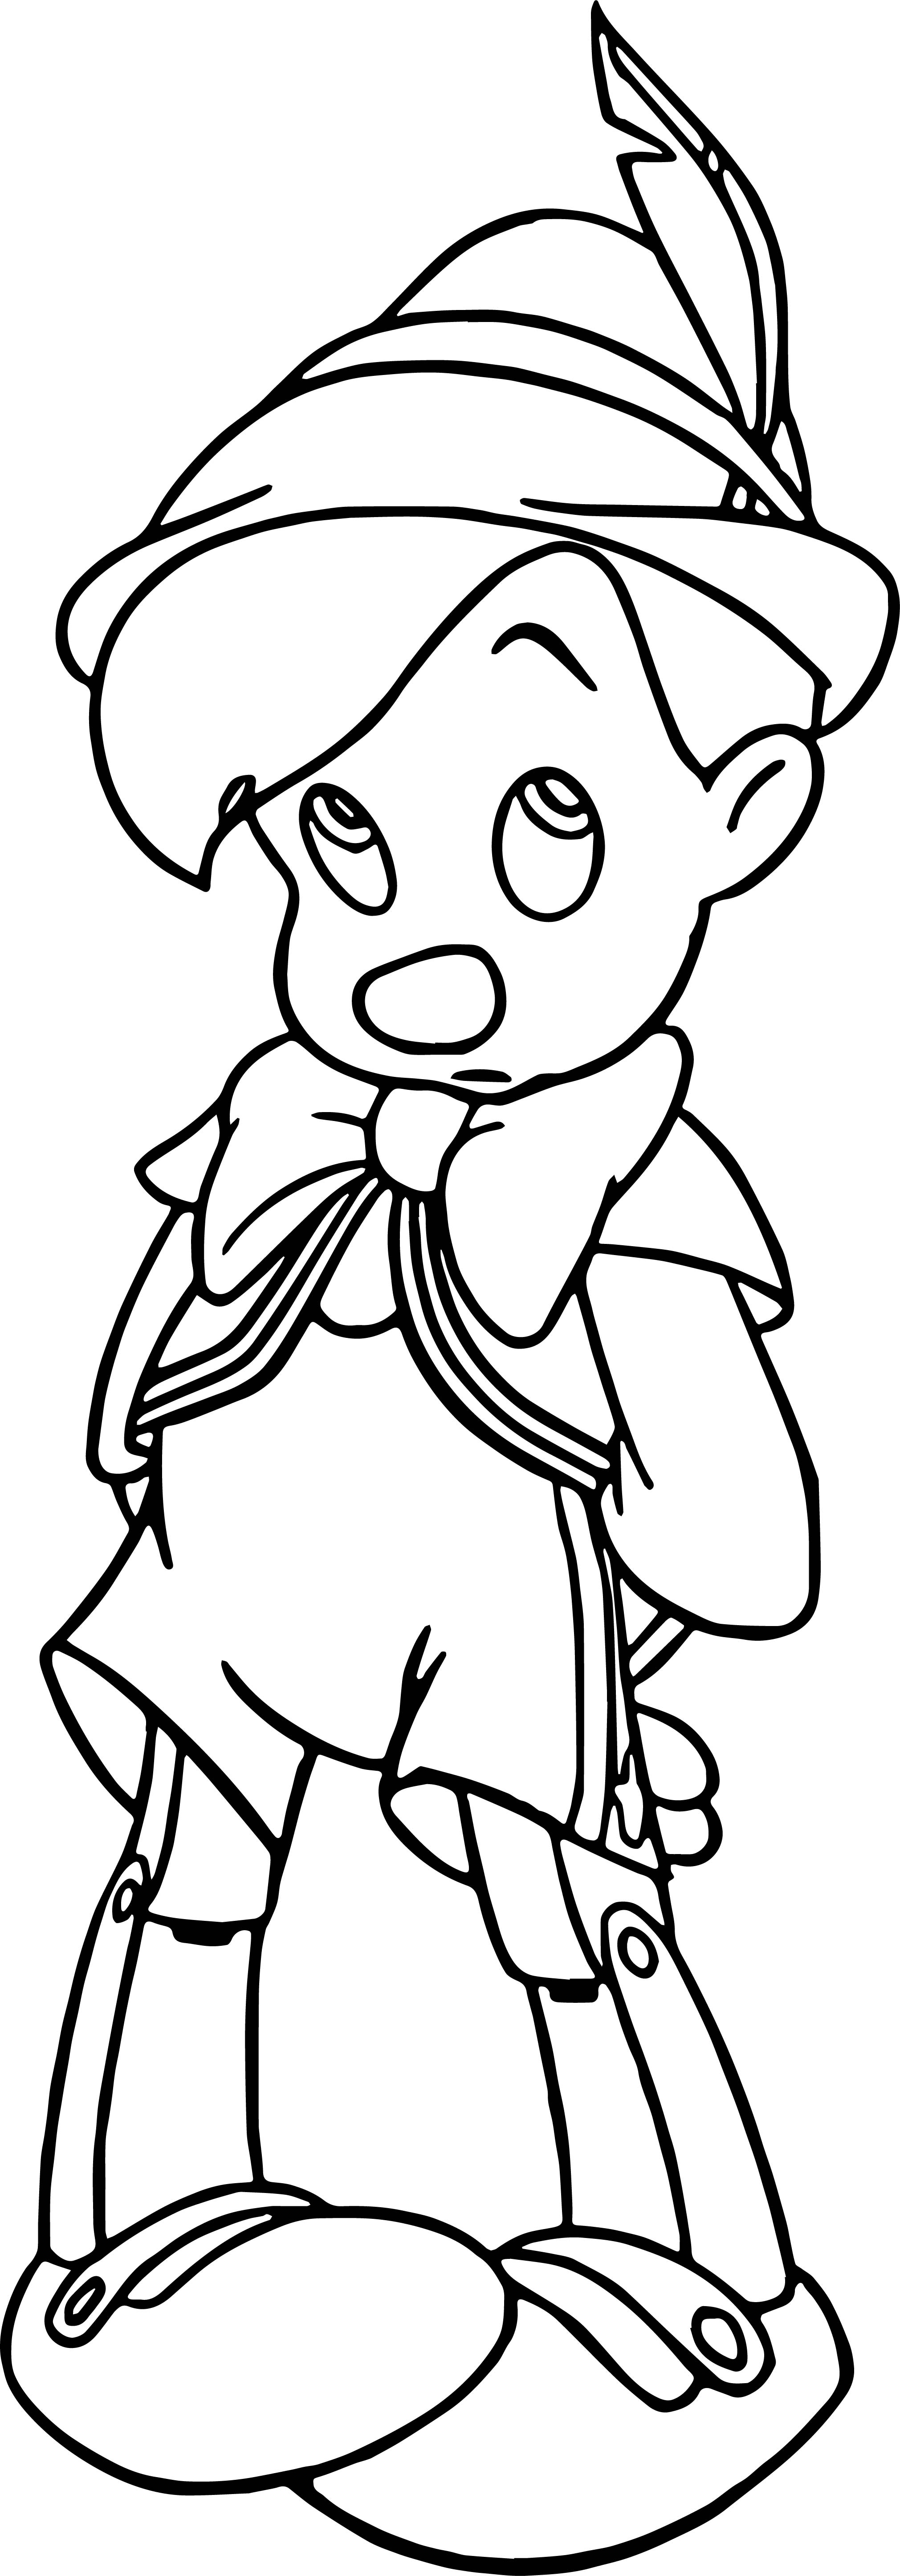 Pinocchio Shy Coloring Pages